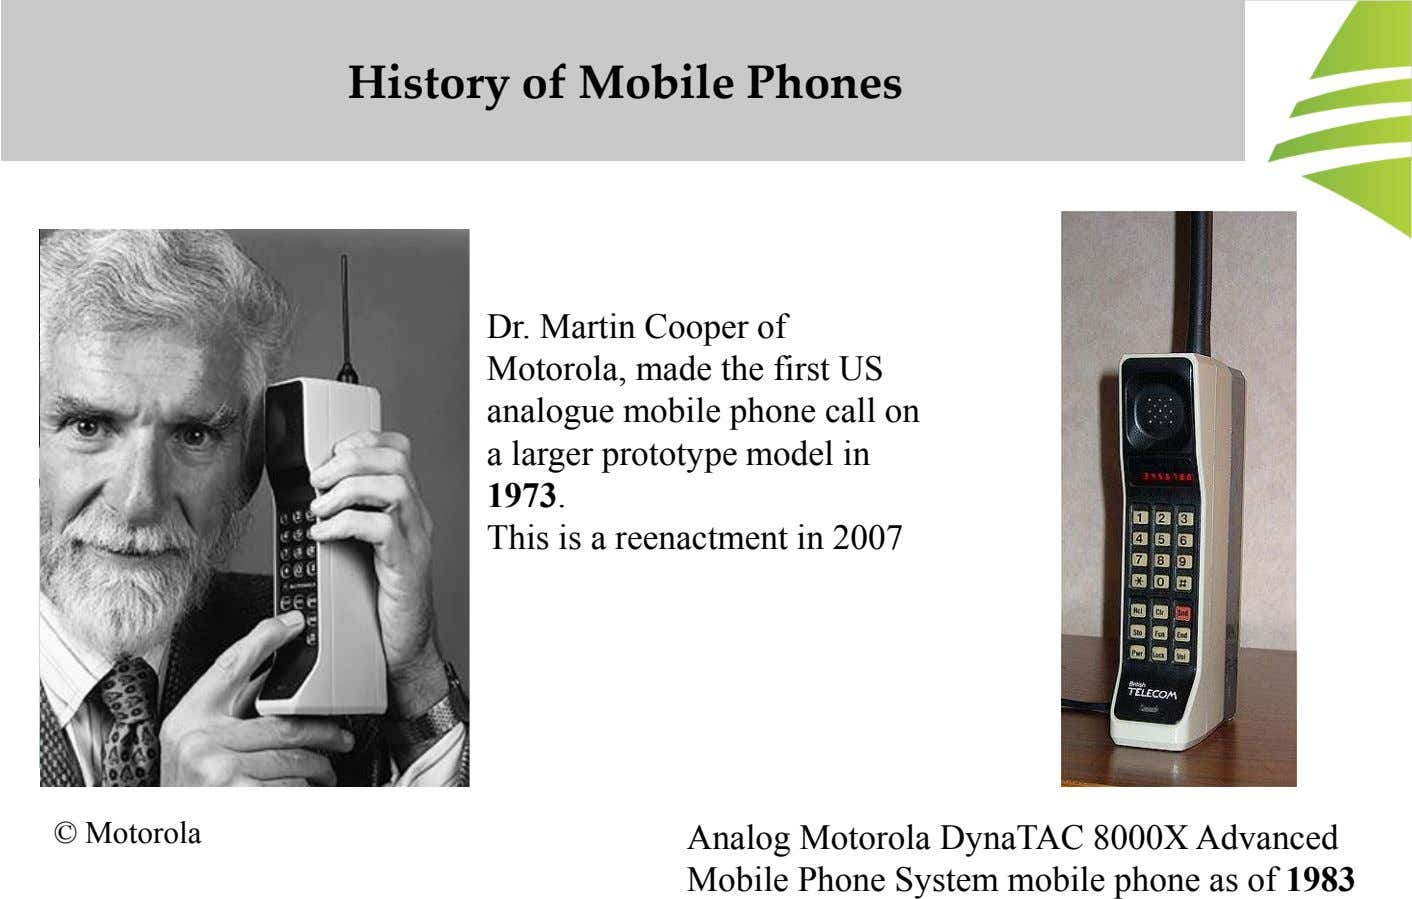 History of Mobile Phones Dr. Martin Cooper of Motorola, made the first US analogue mobile phone